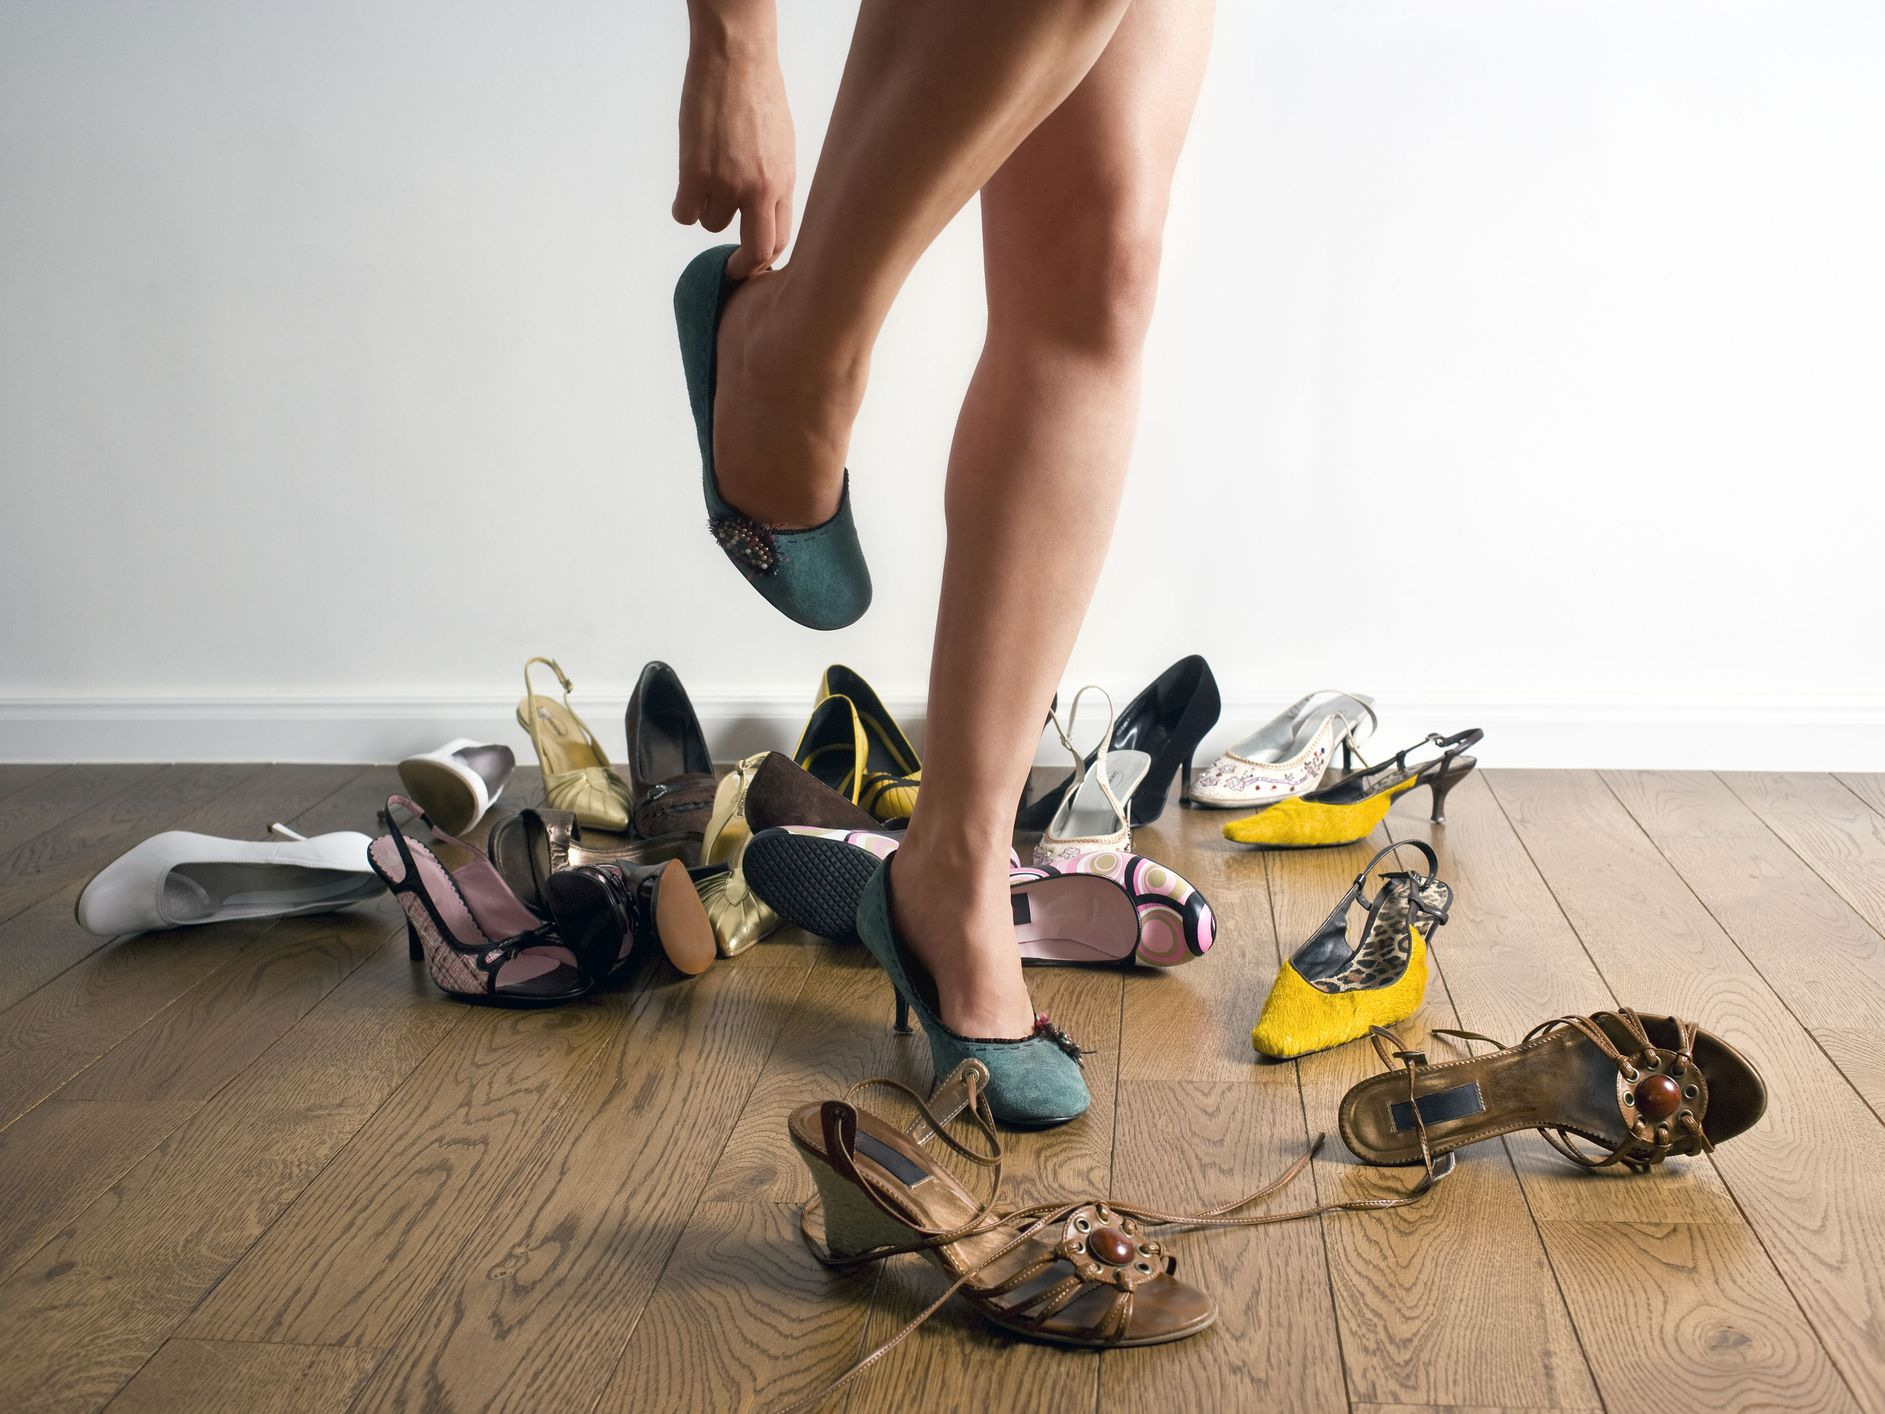 reputable site 2d87b 0a419 5 Brands of Shoes to Sell on eBay for Profit